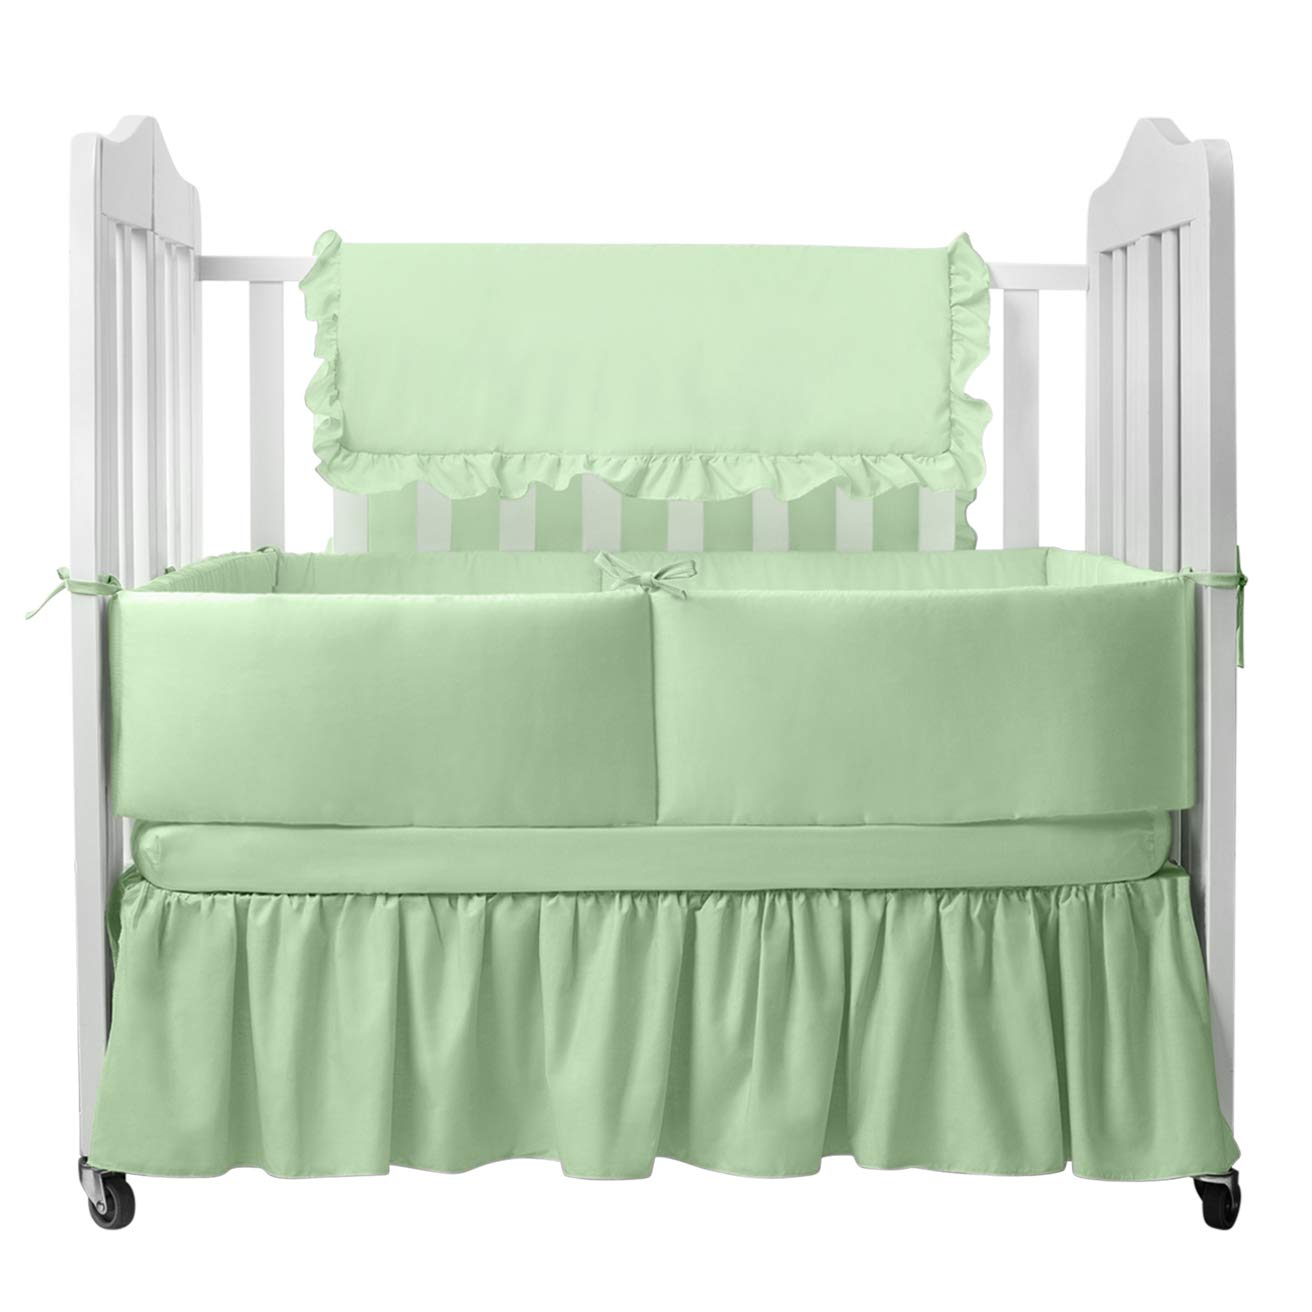 24x38 24x38 009243088776 Babydoll Tailored Baby Porta Crib Bumpers Green